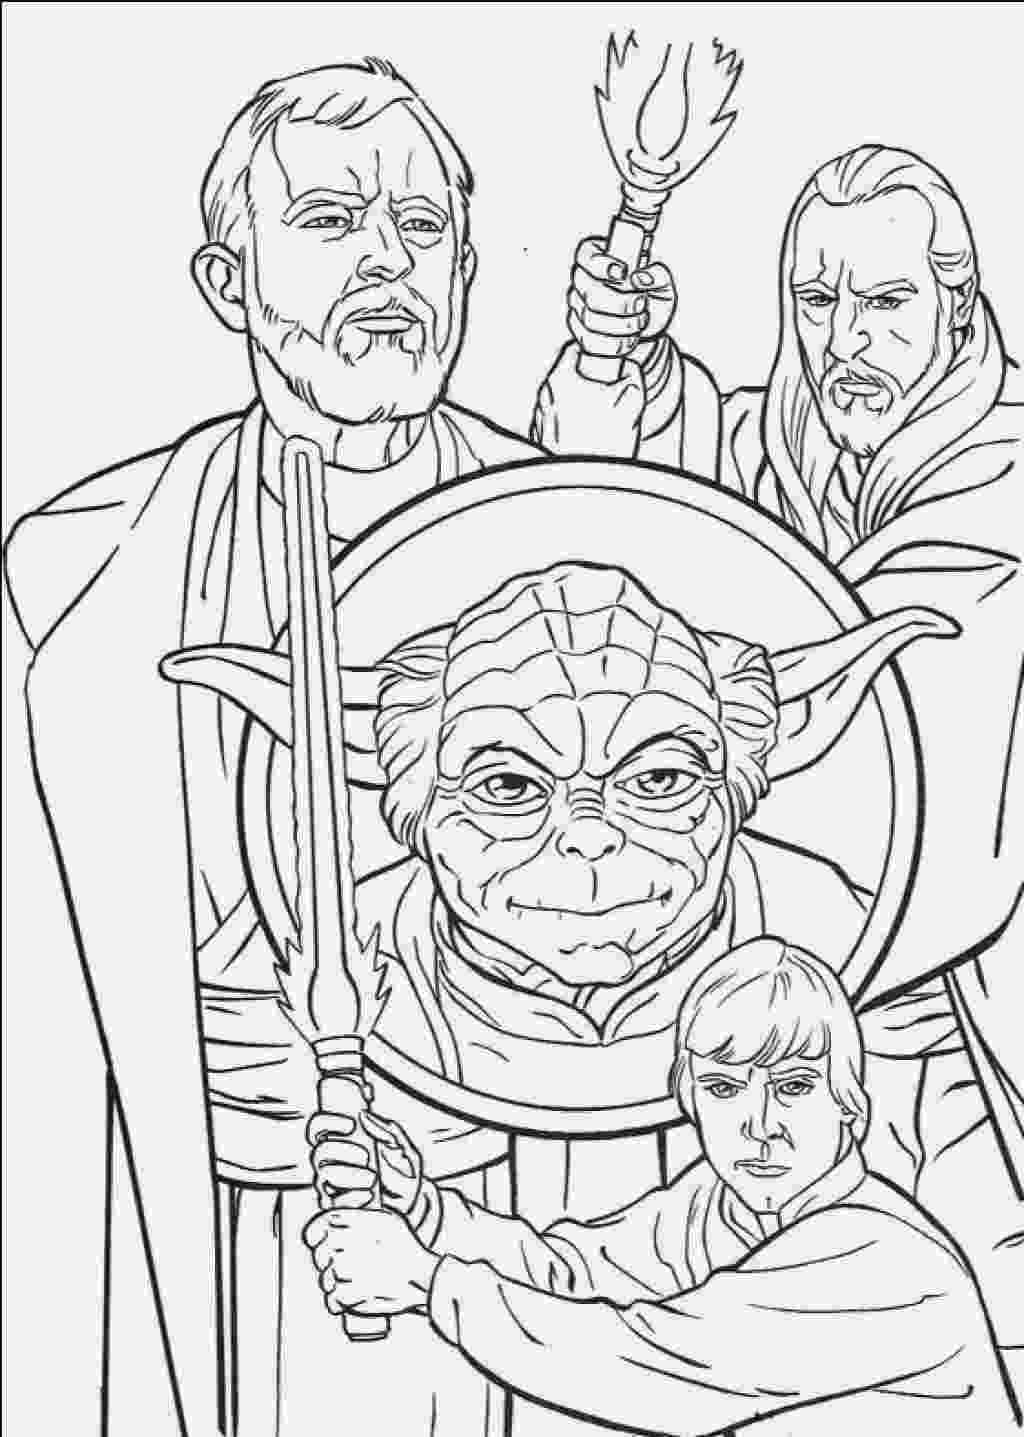 star wars print out coloring pages star wars clone wars coloring pages coloring star pages print wars out